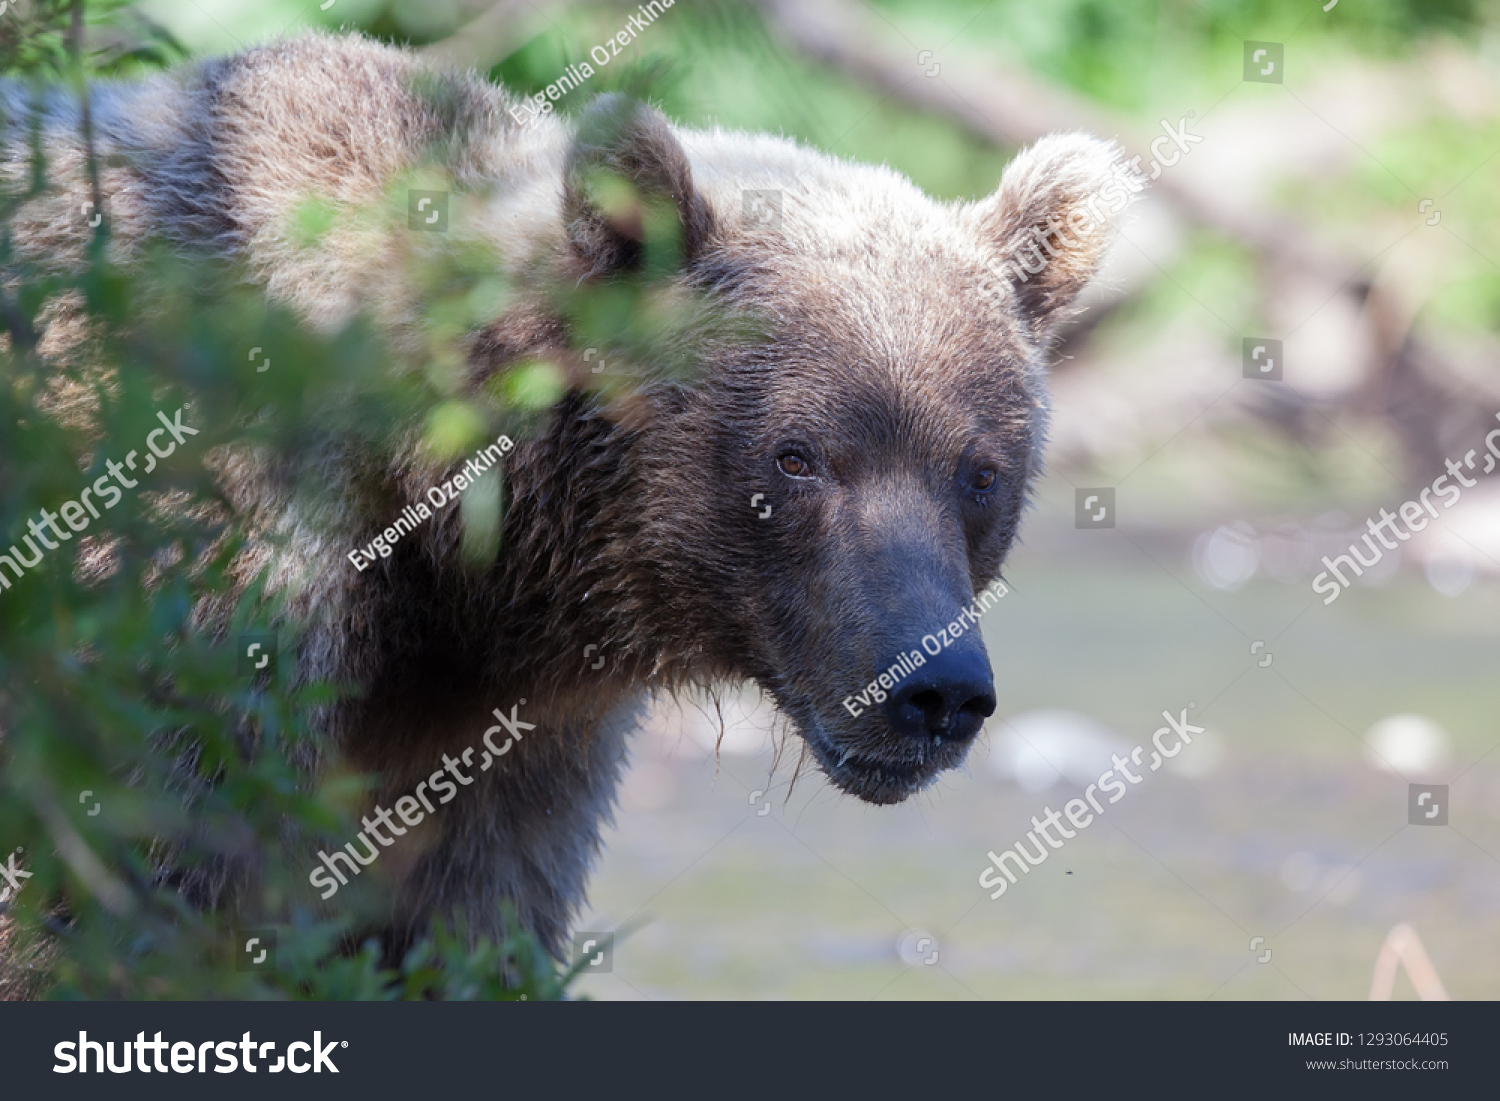 stock-photo-close-up-head-of-brown-wild-